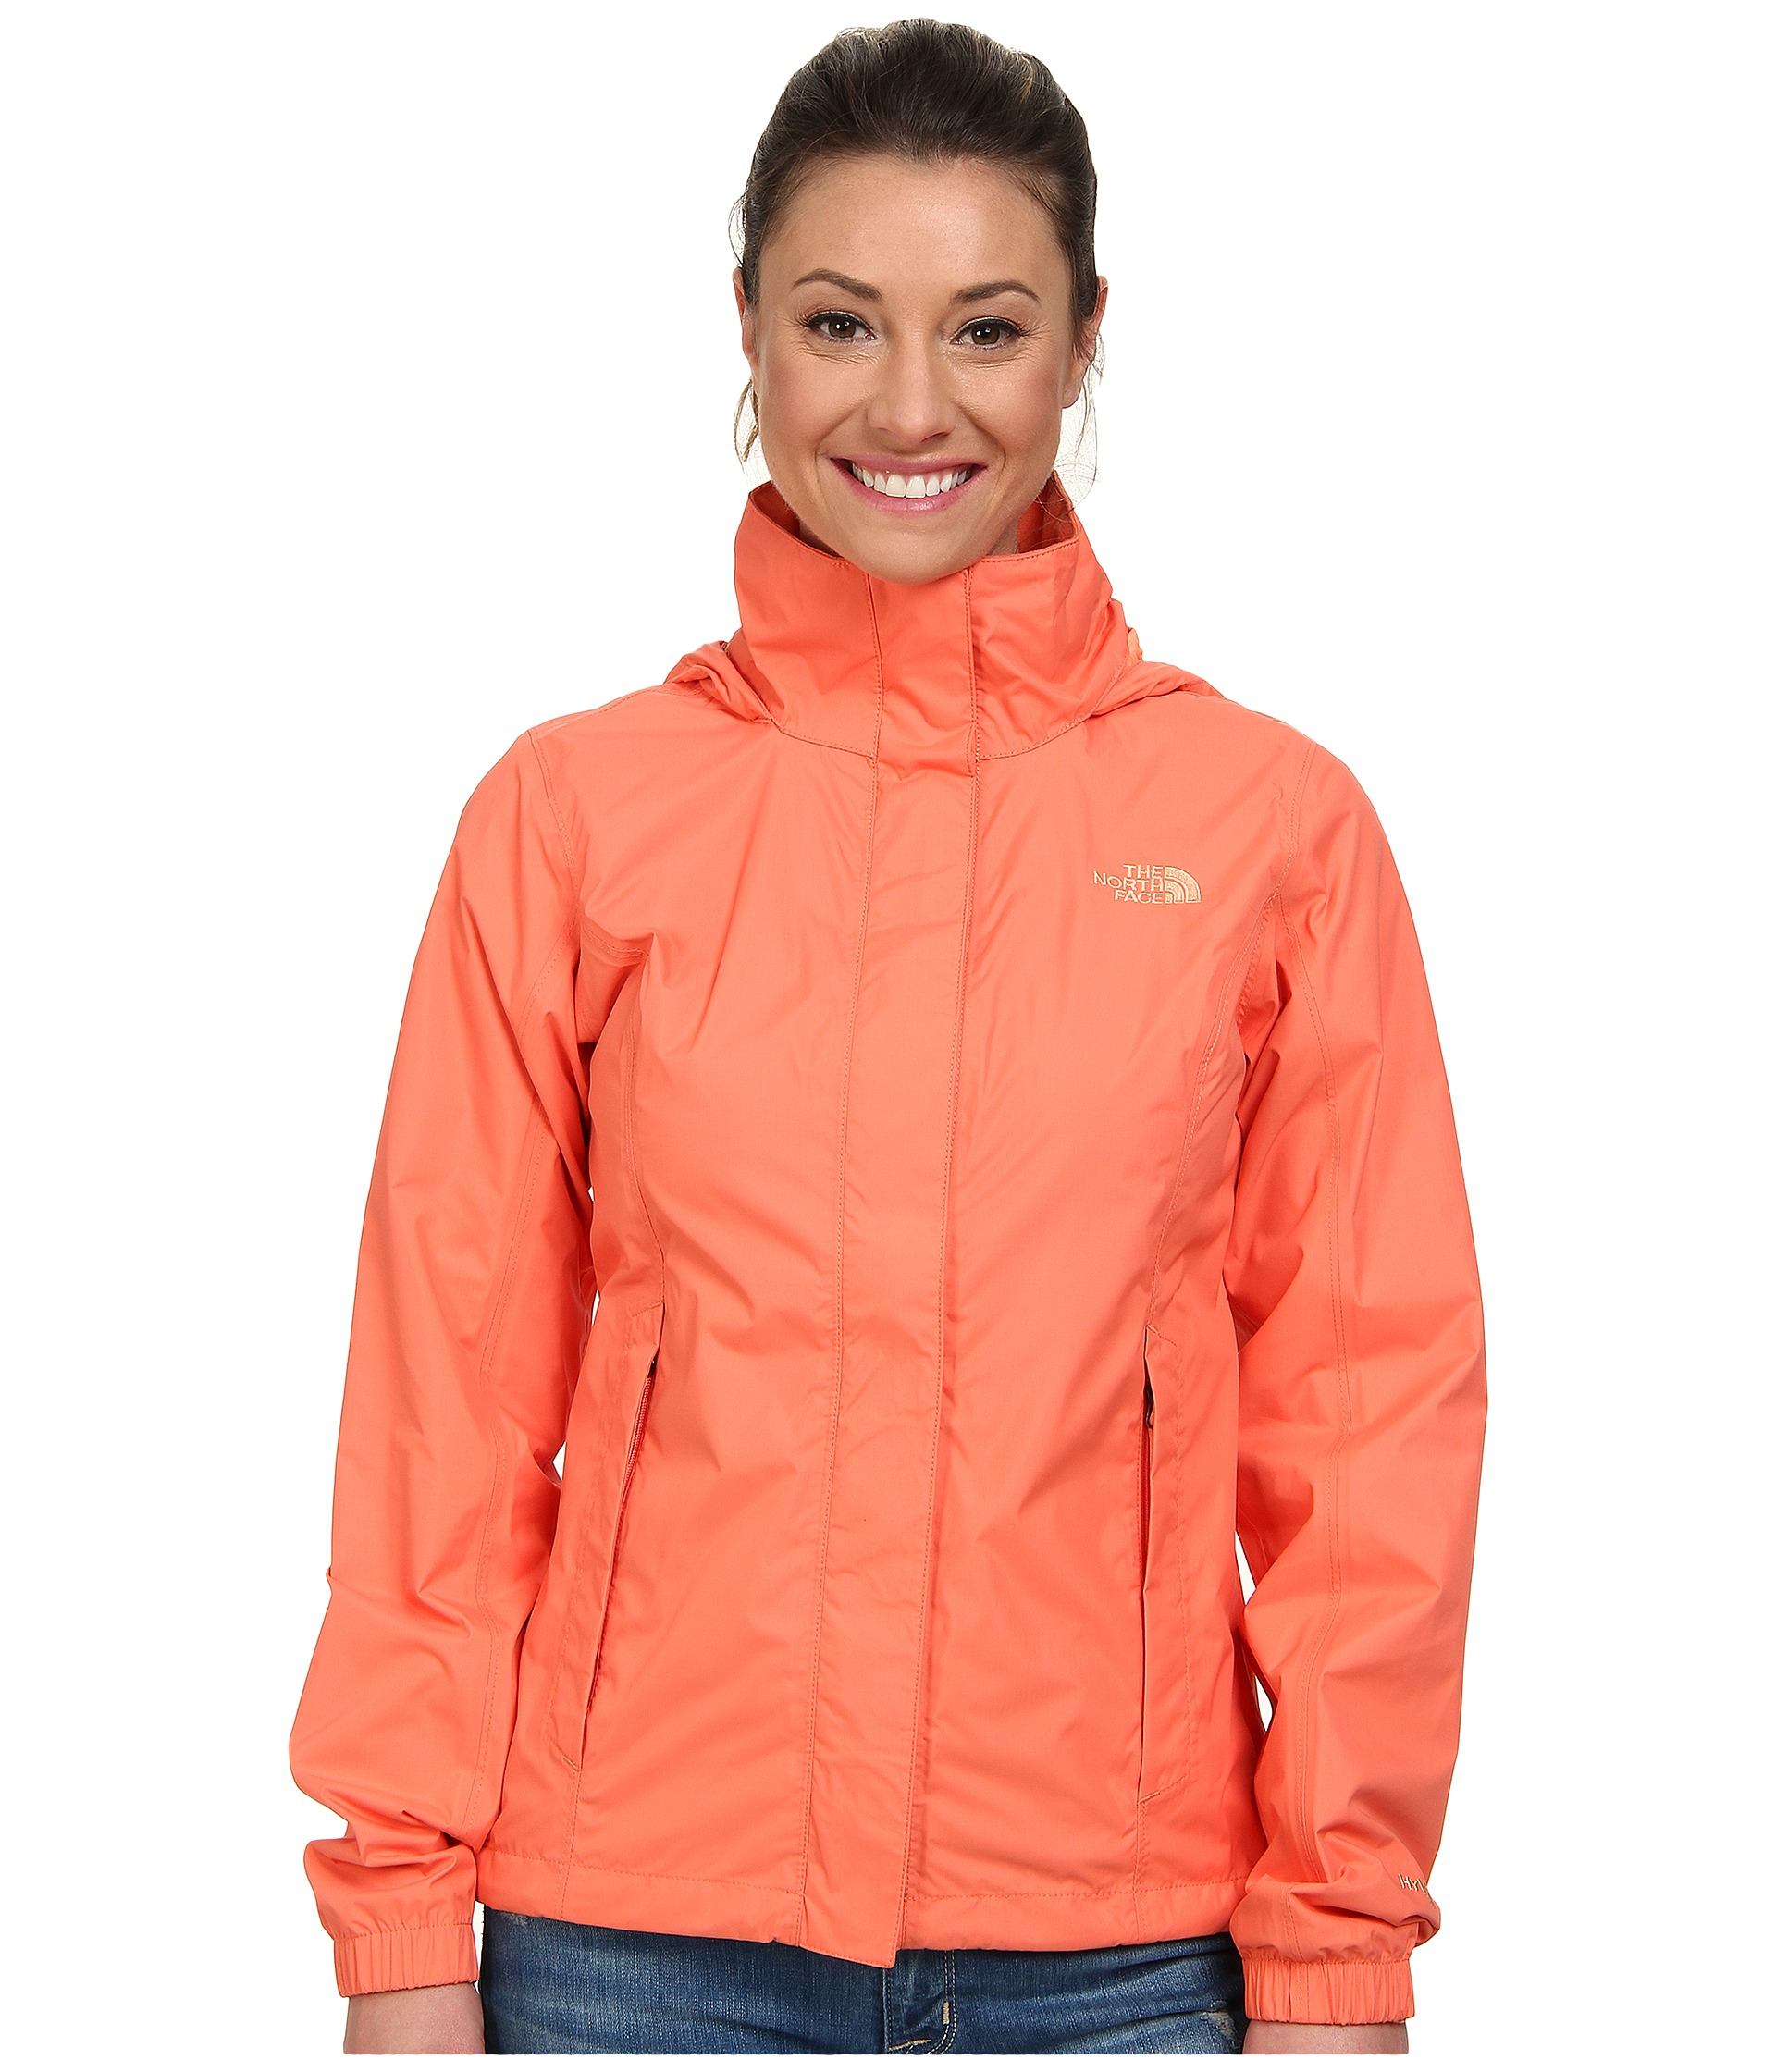 bde4e78b424d Lyst - The North Face Resolve Jacket in Orange